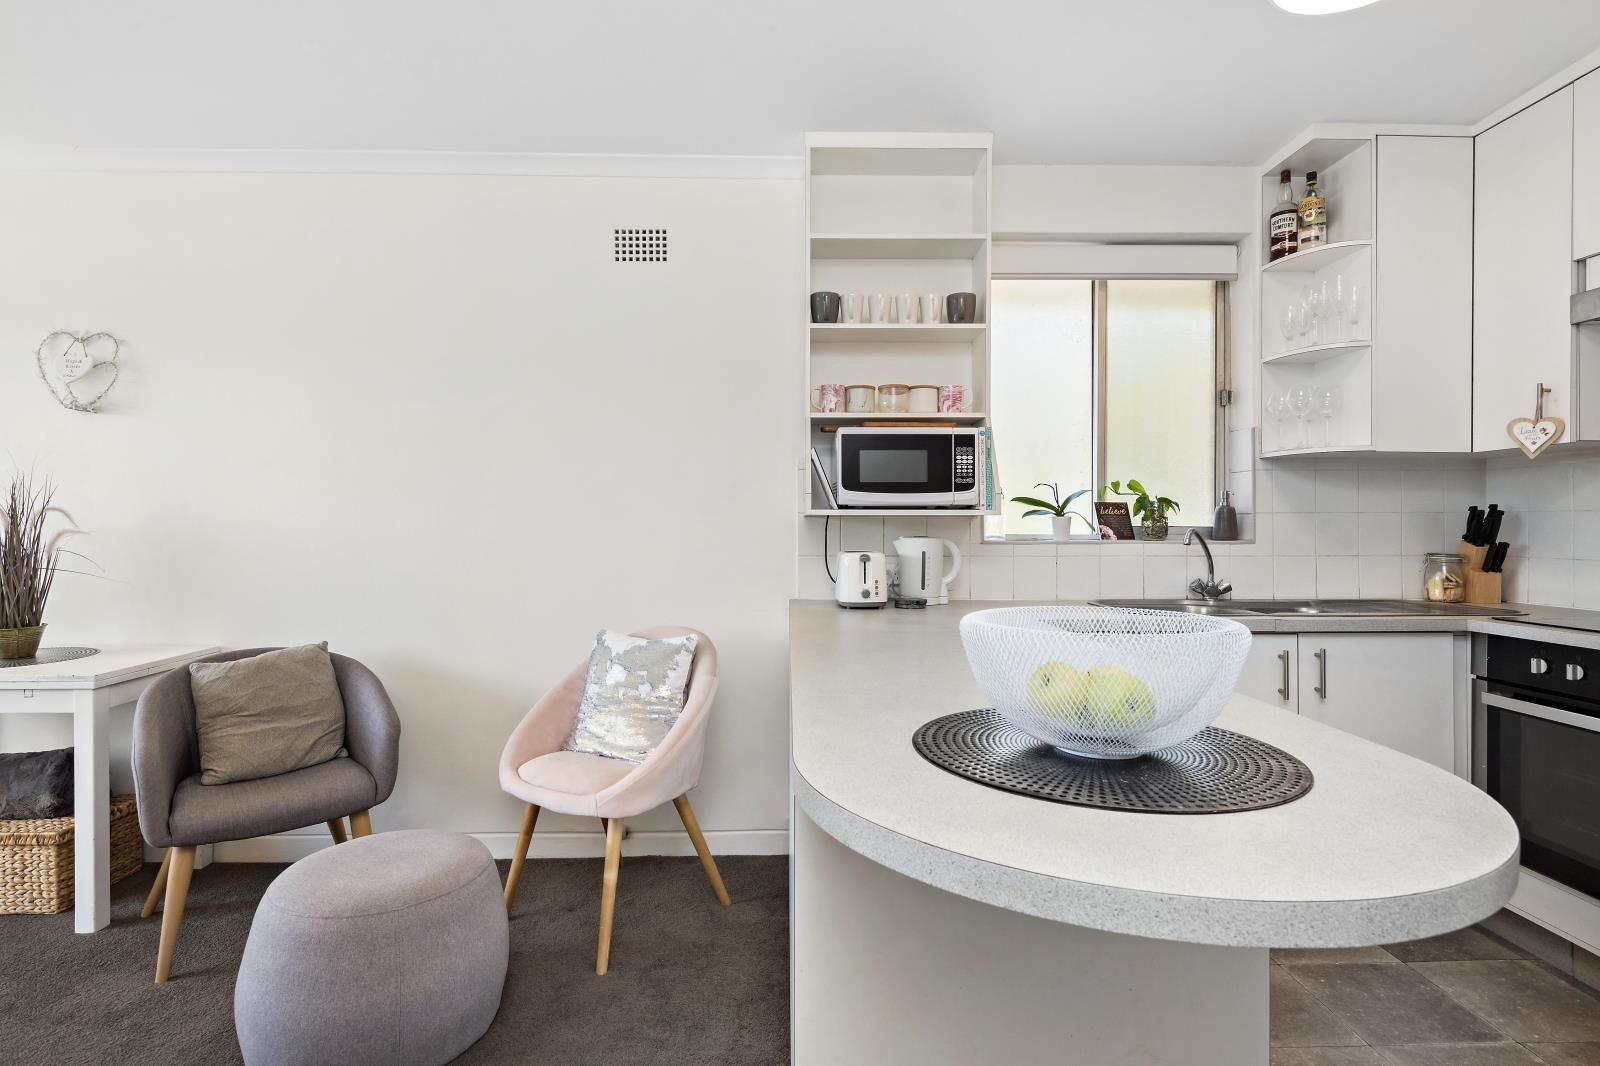 22/16 CAMPBELL PARADE, Manly Vale NSW 2093, Image 0